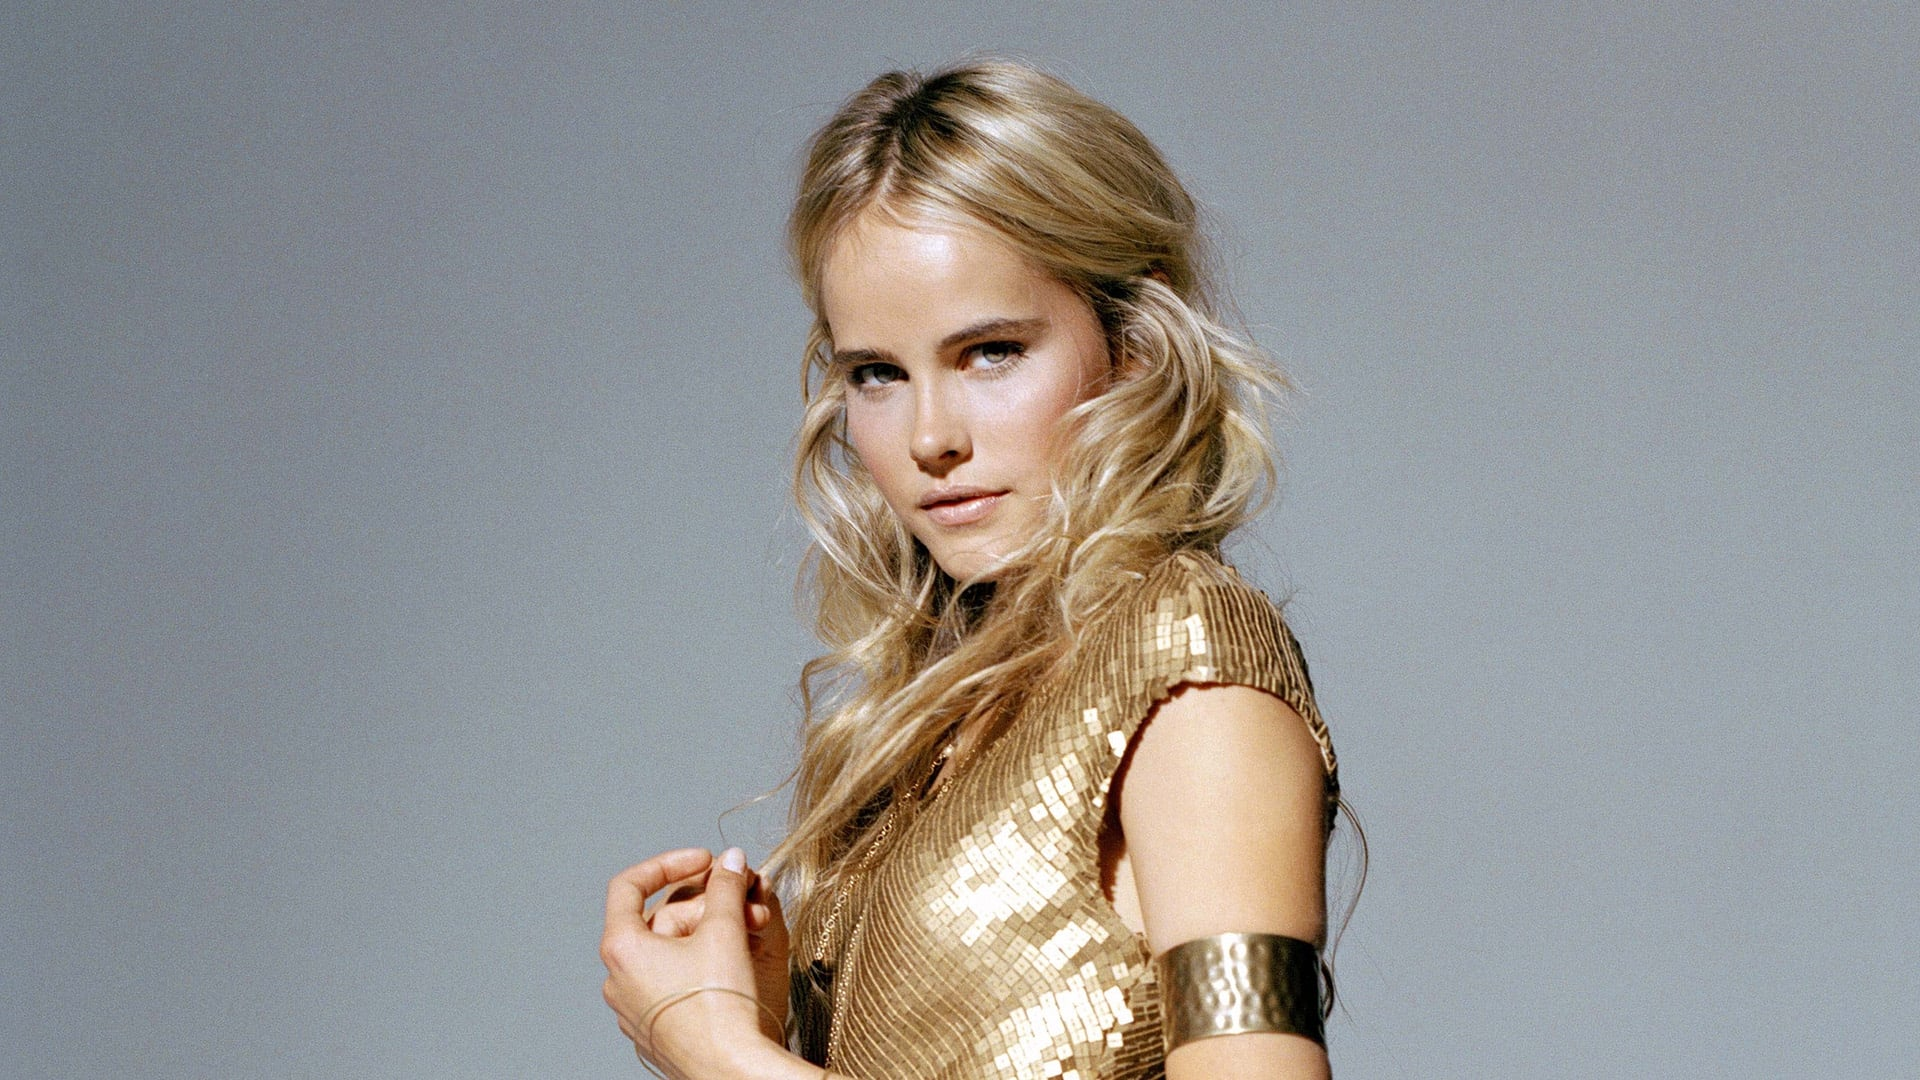 14 Isabel Lucas wallpapers HD Download 1920x1080